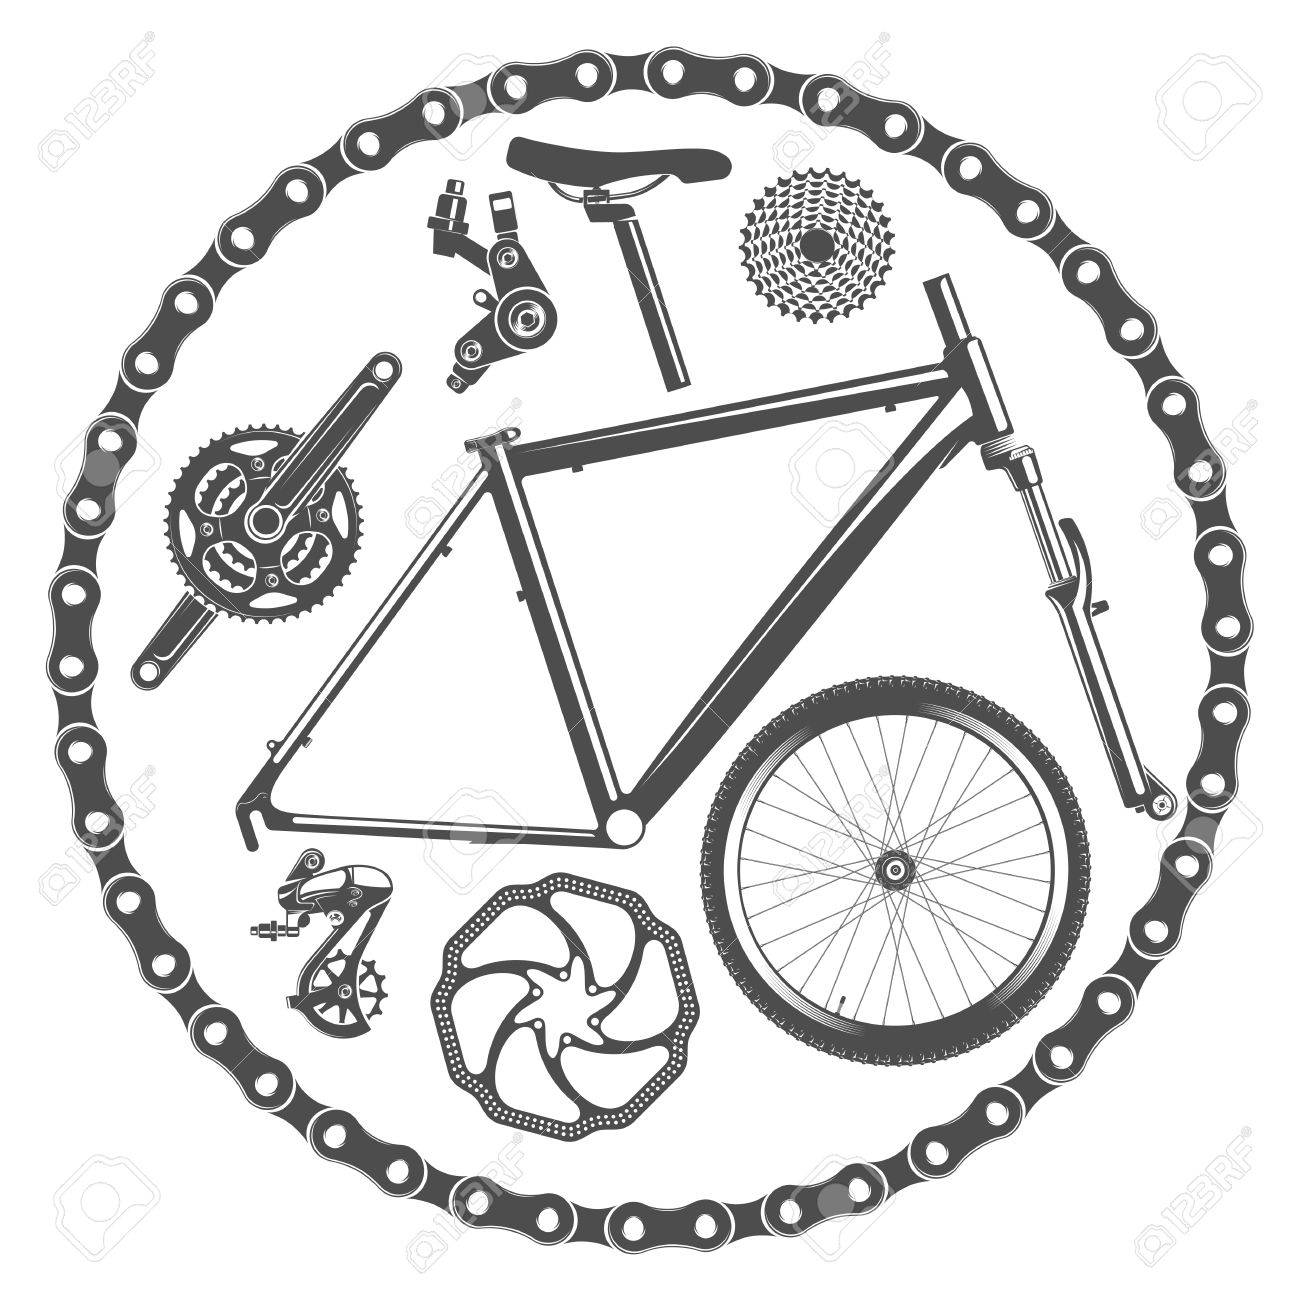 Illustration Bicycle Parts In Vintage Style Royalty Free Cliparts